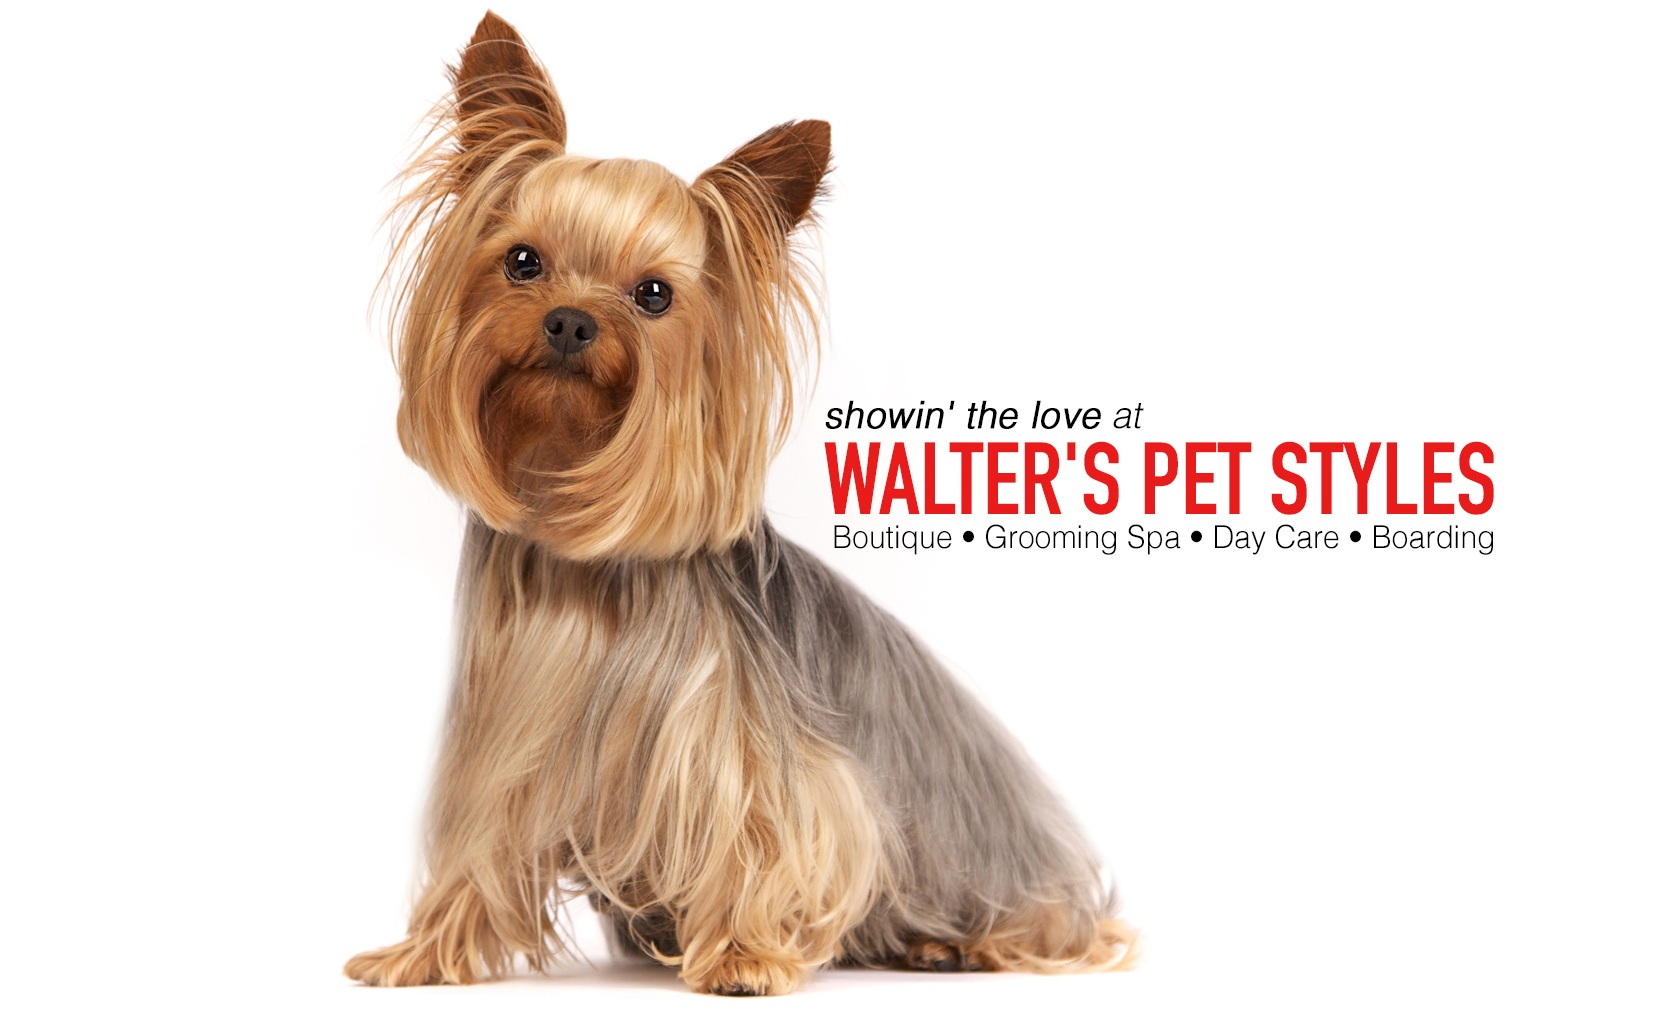 walters-pet-styles-dog-grooming-yorkie-text.jpg